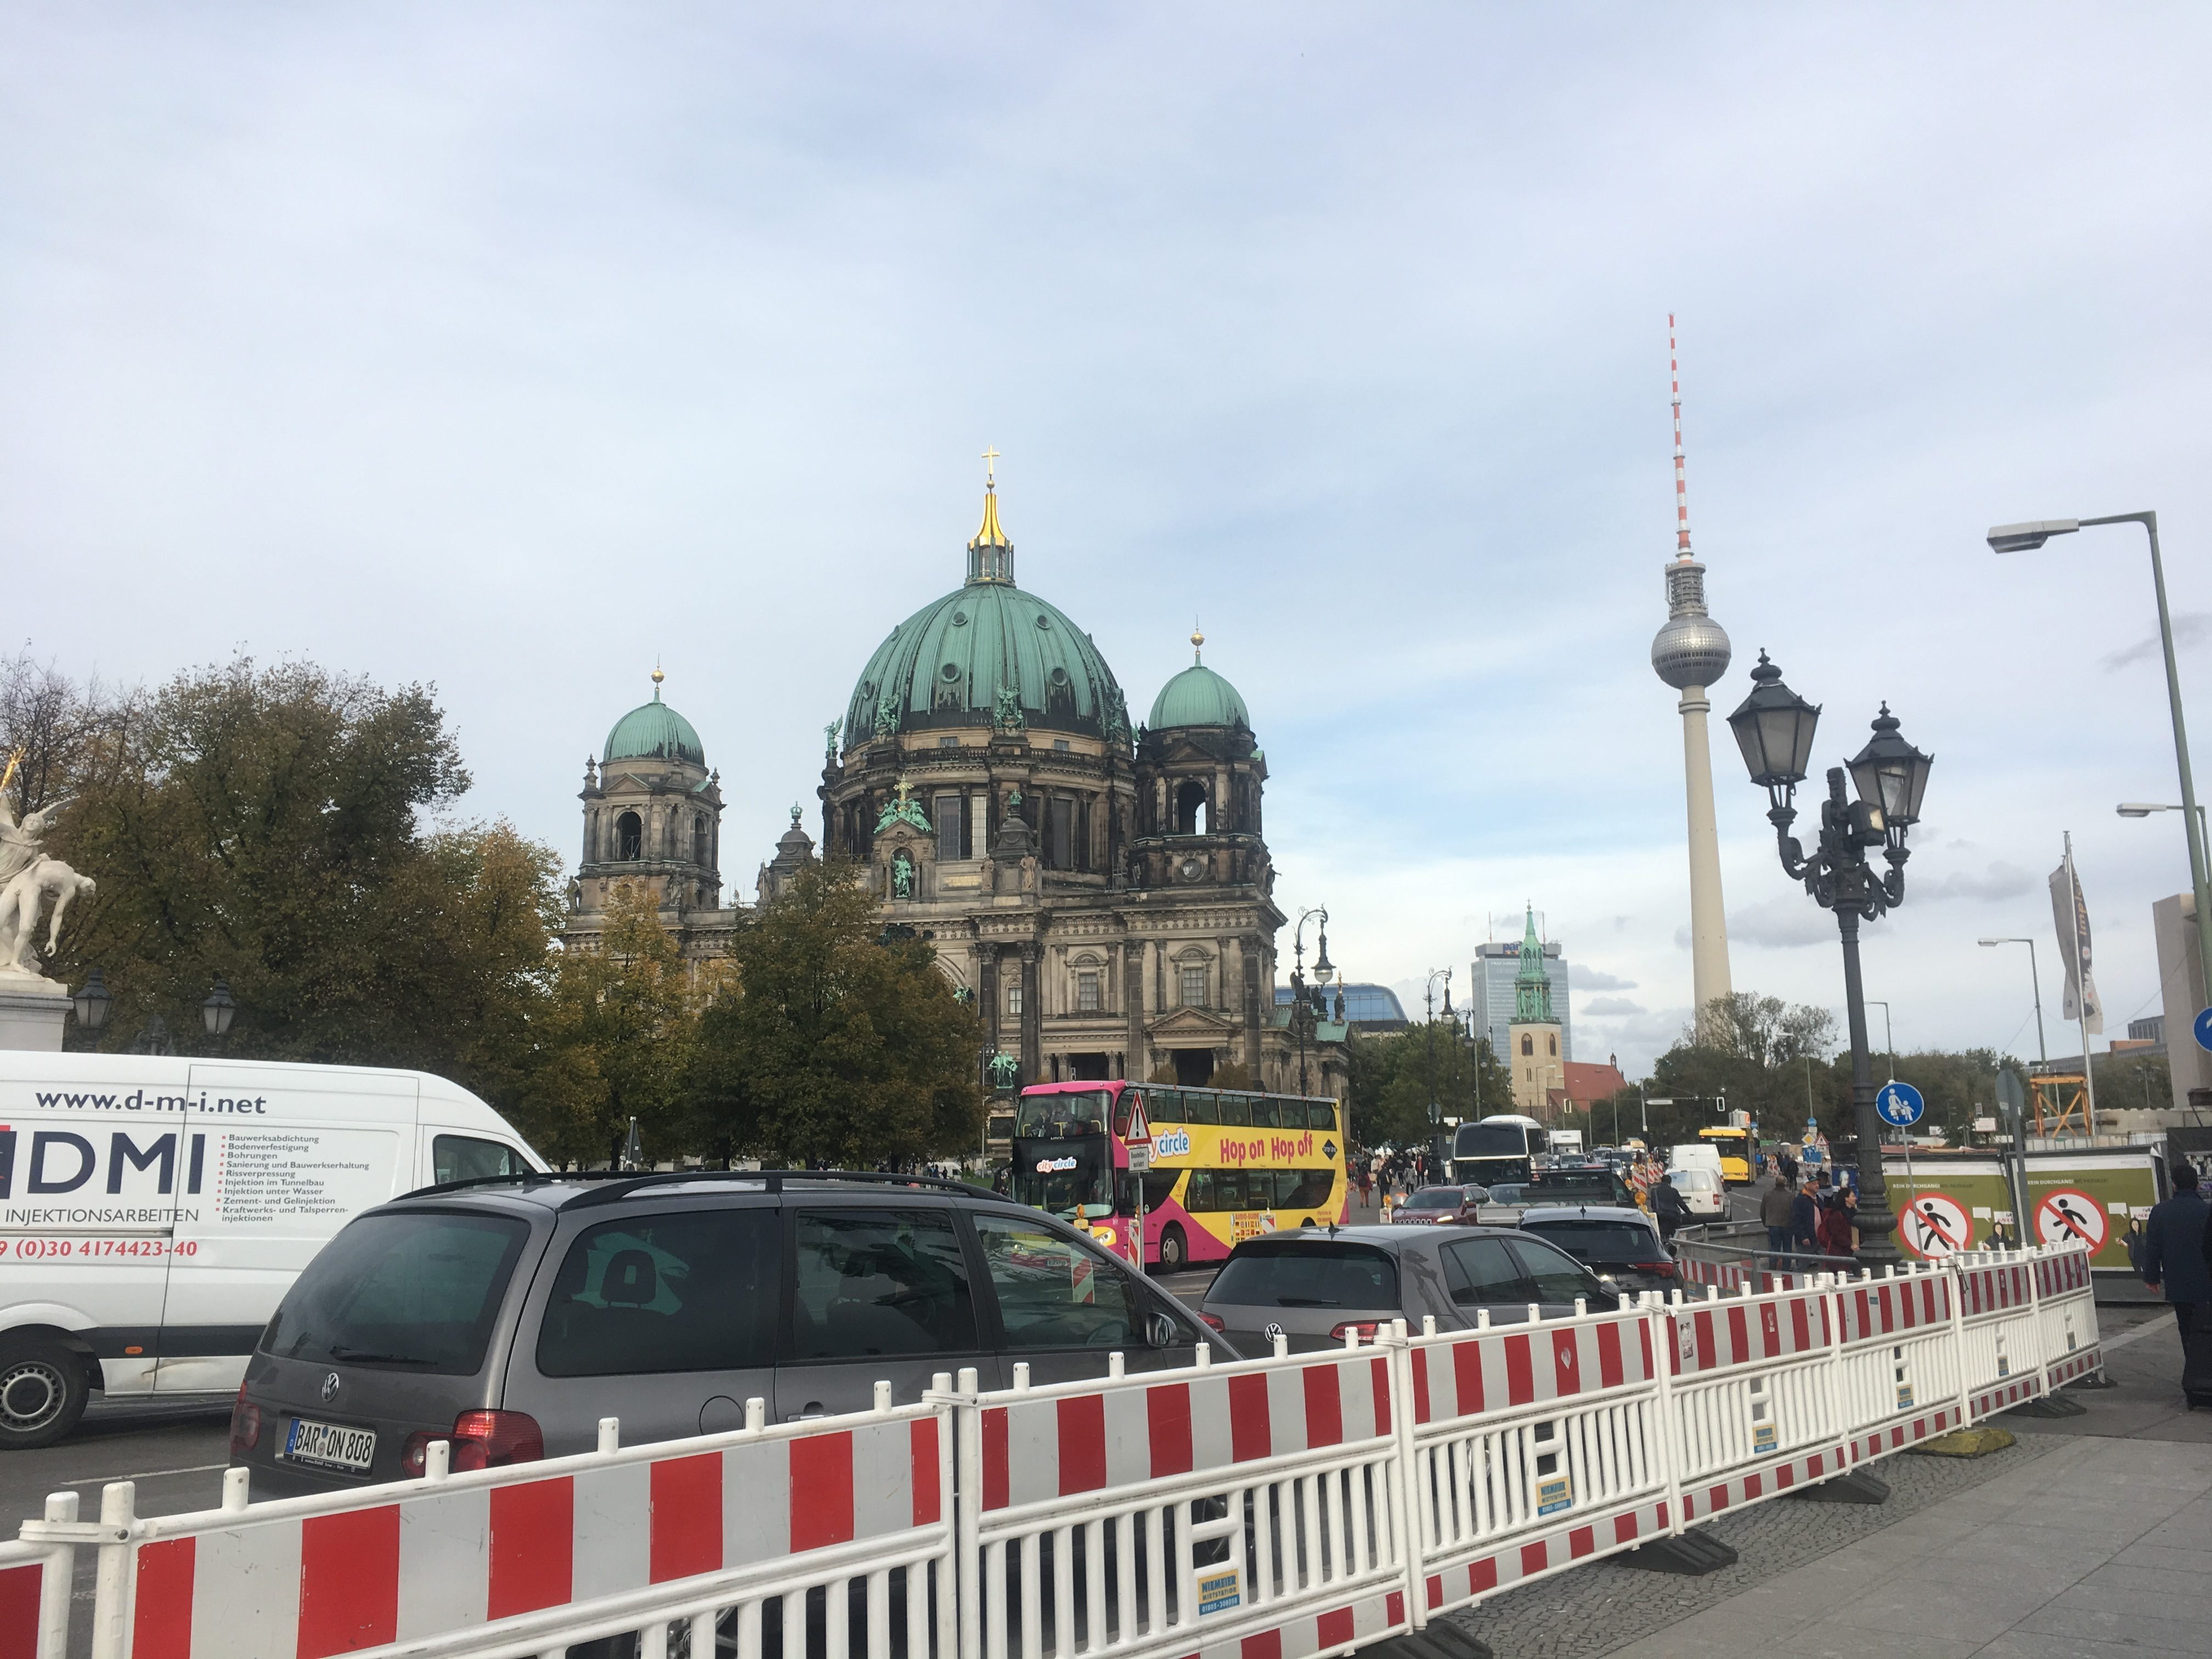 Berlin pointy things, traffic and barriers